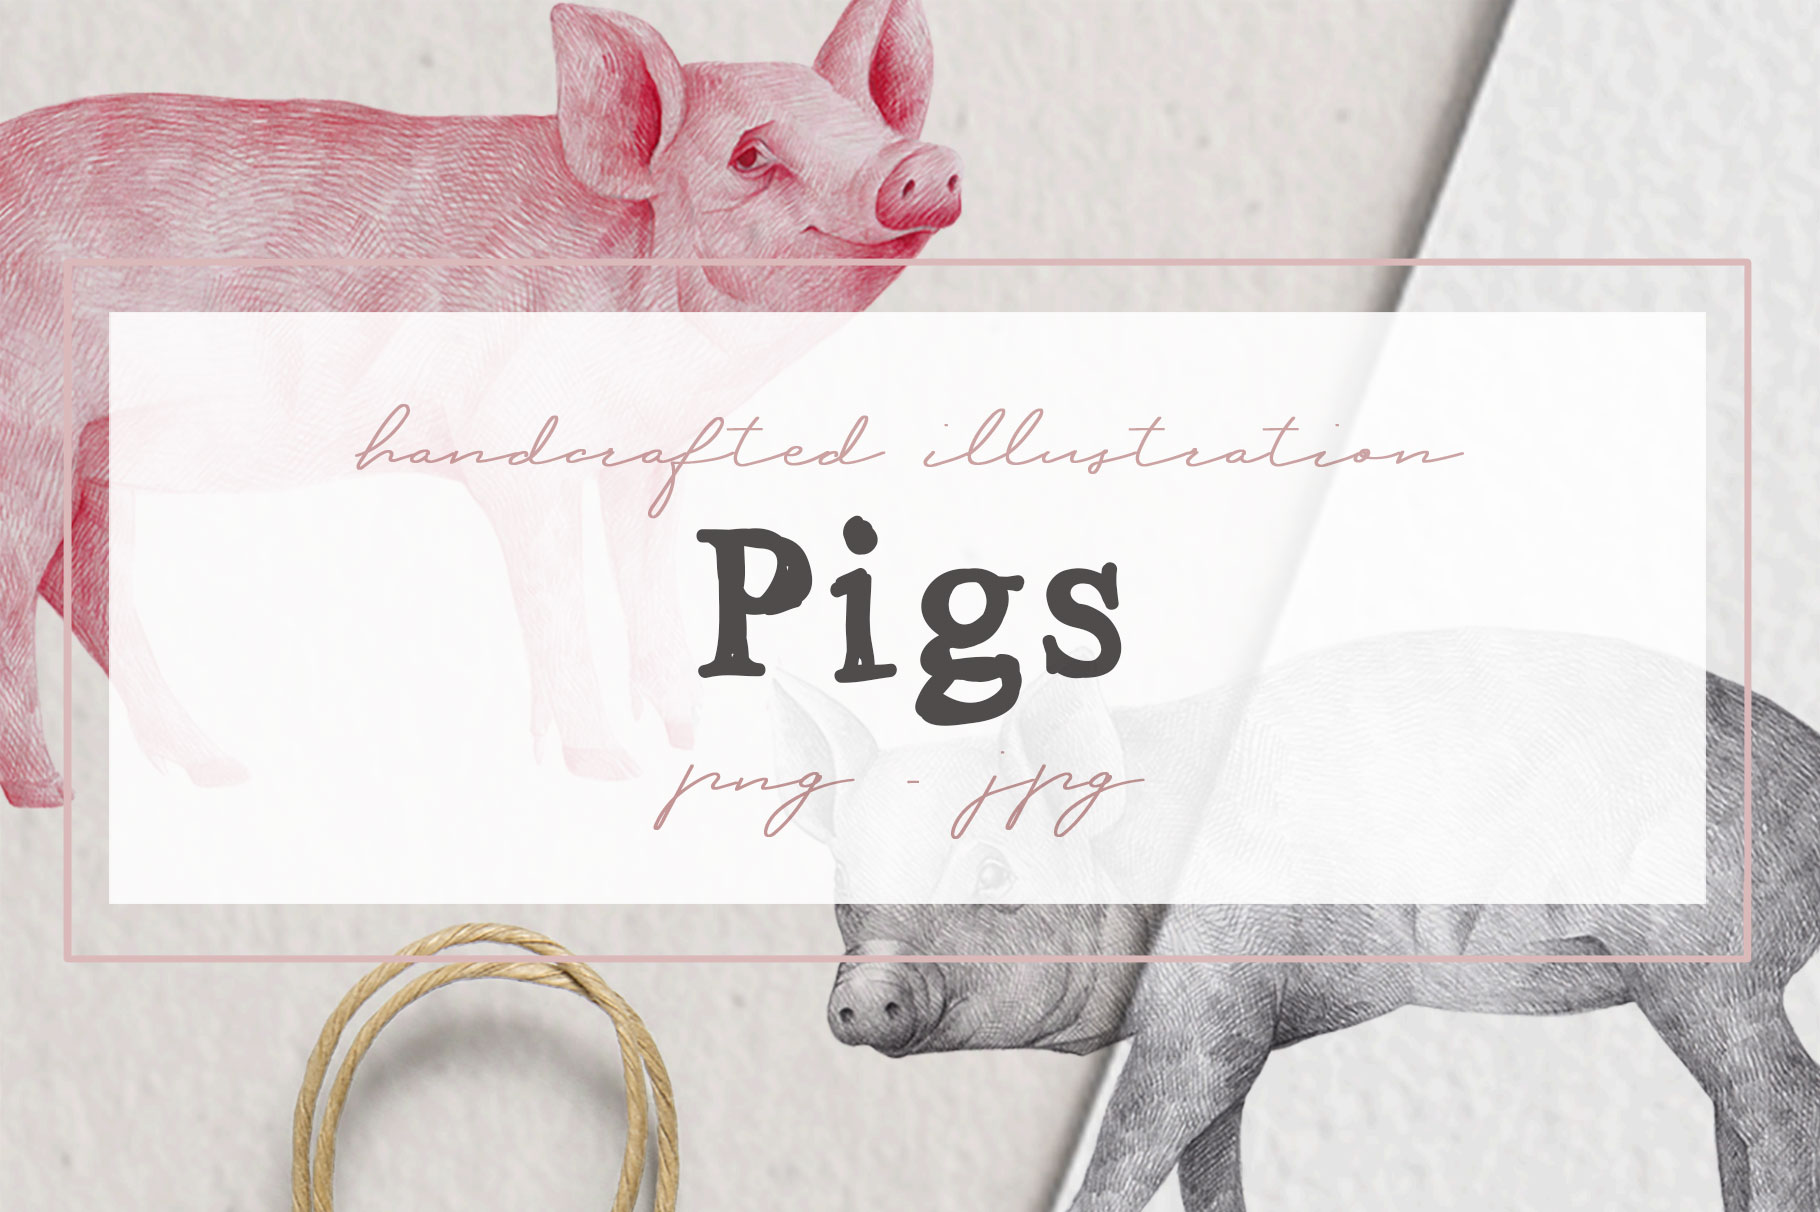 Hand drawn Illustrations Pigs example image 1